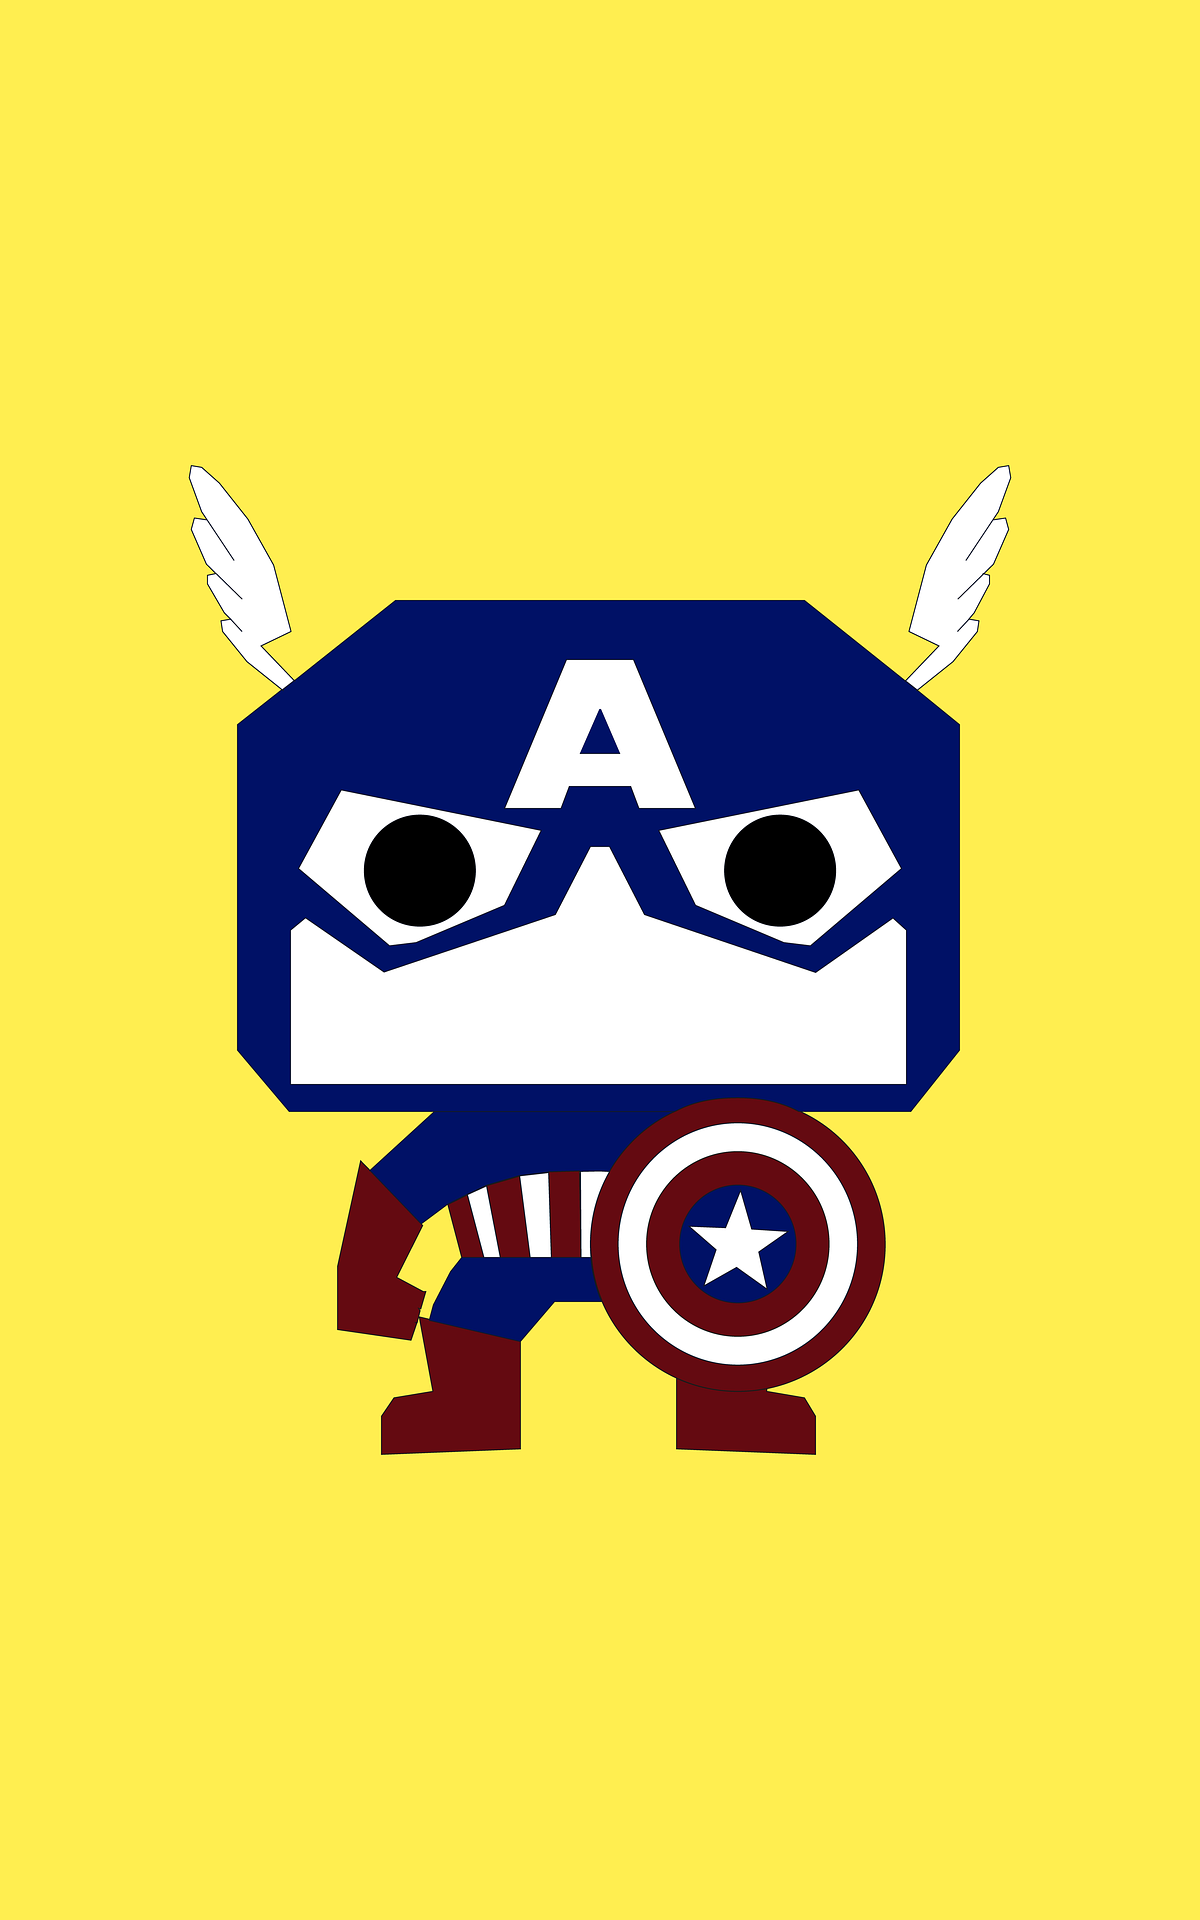 Capitaine america, super-héros, Marvel, illustration, bande dessinée - Fonds d'écran HD - Professor-falken.com